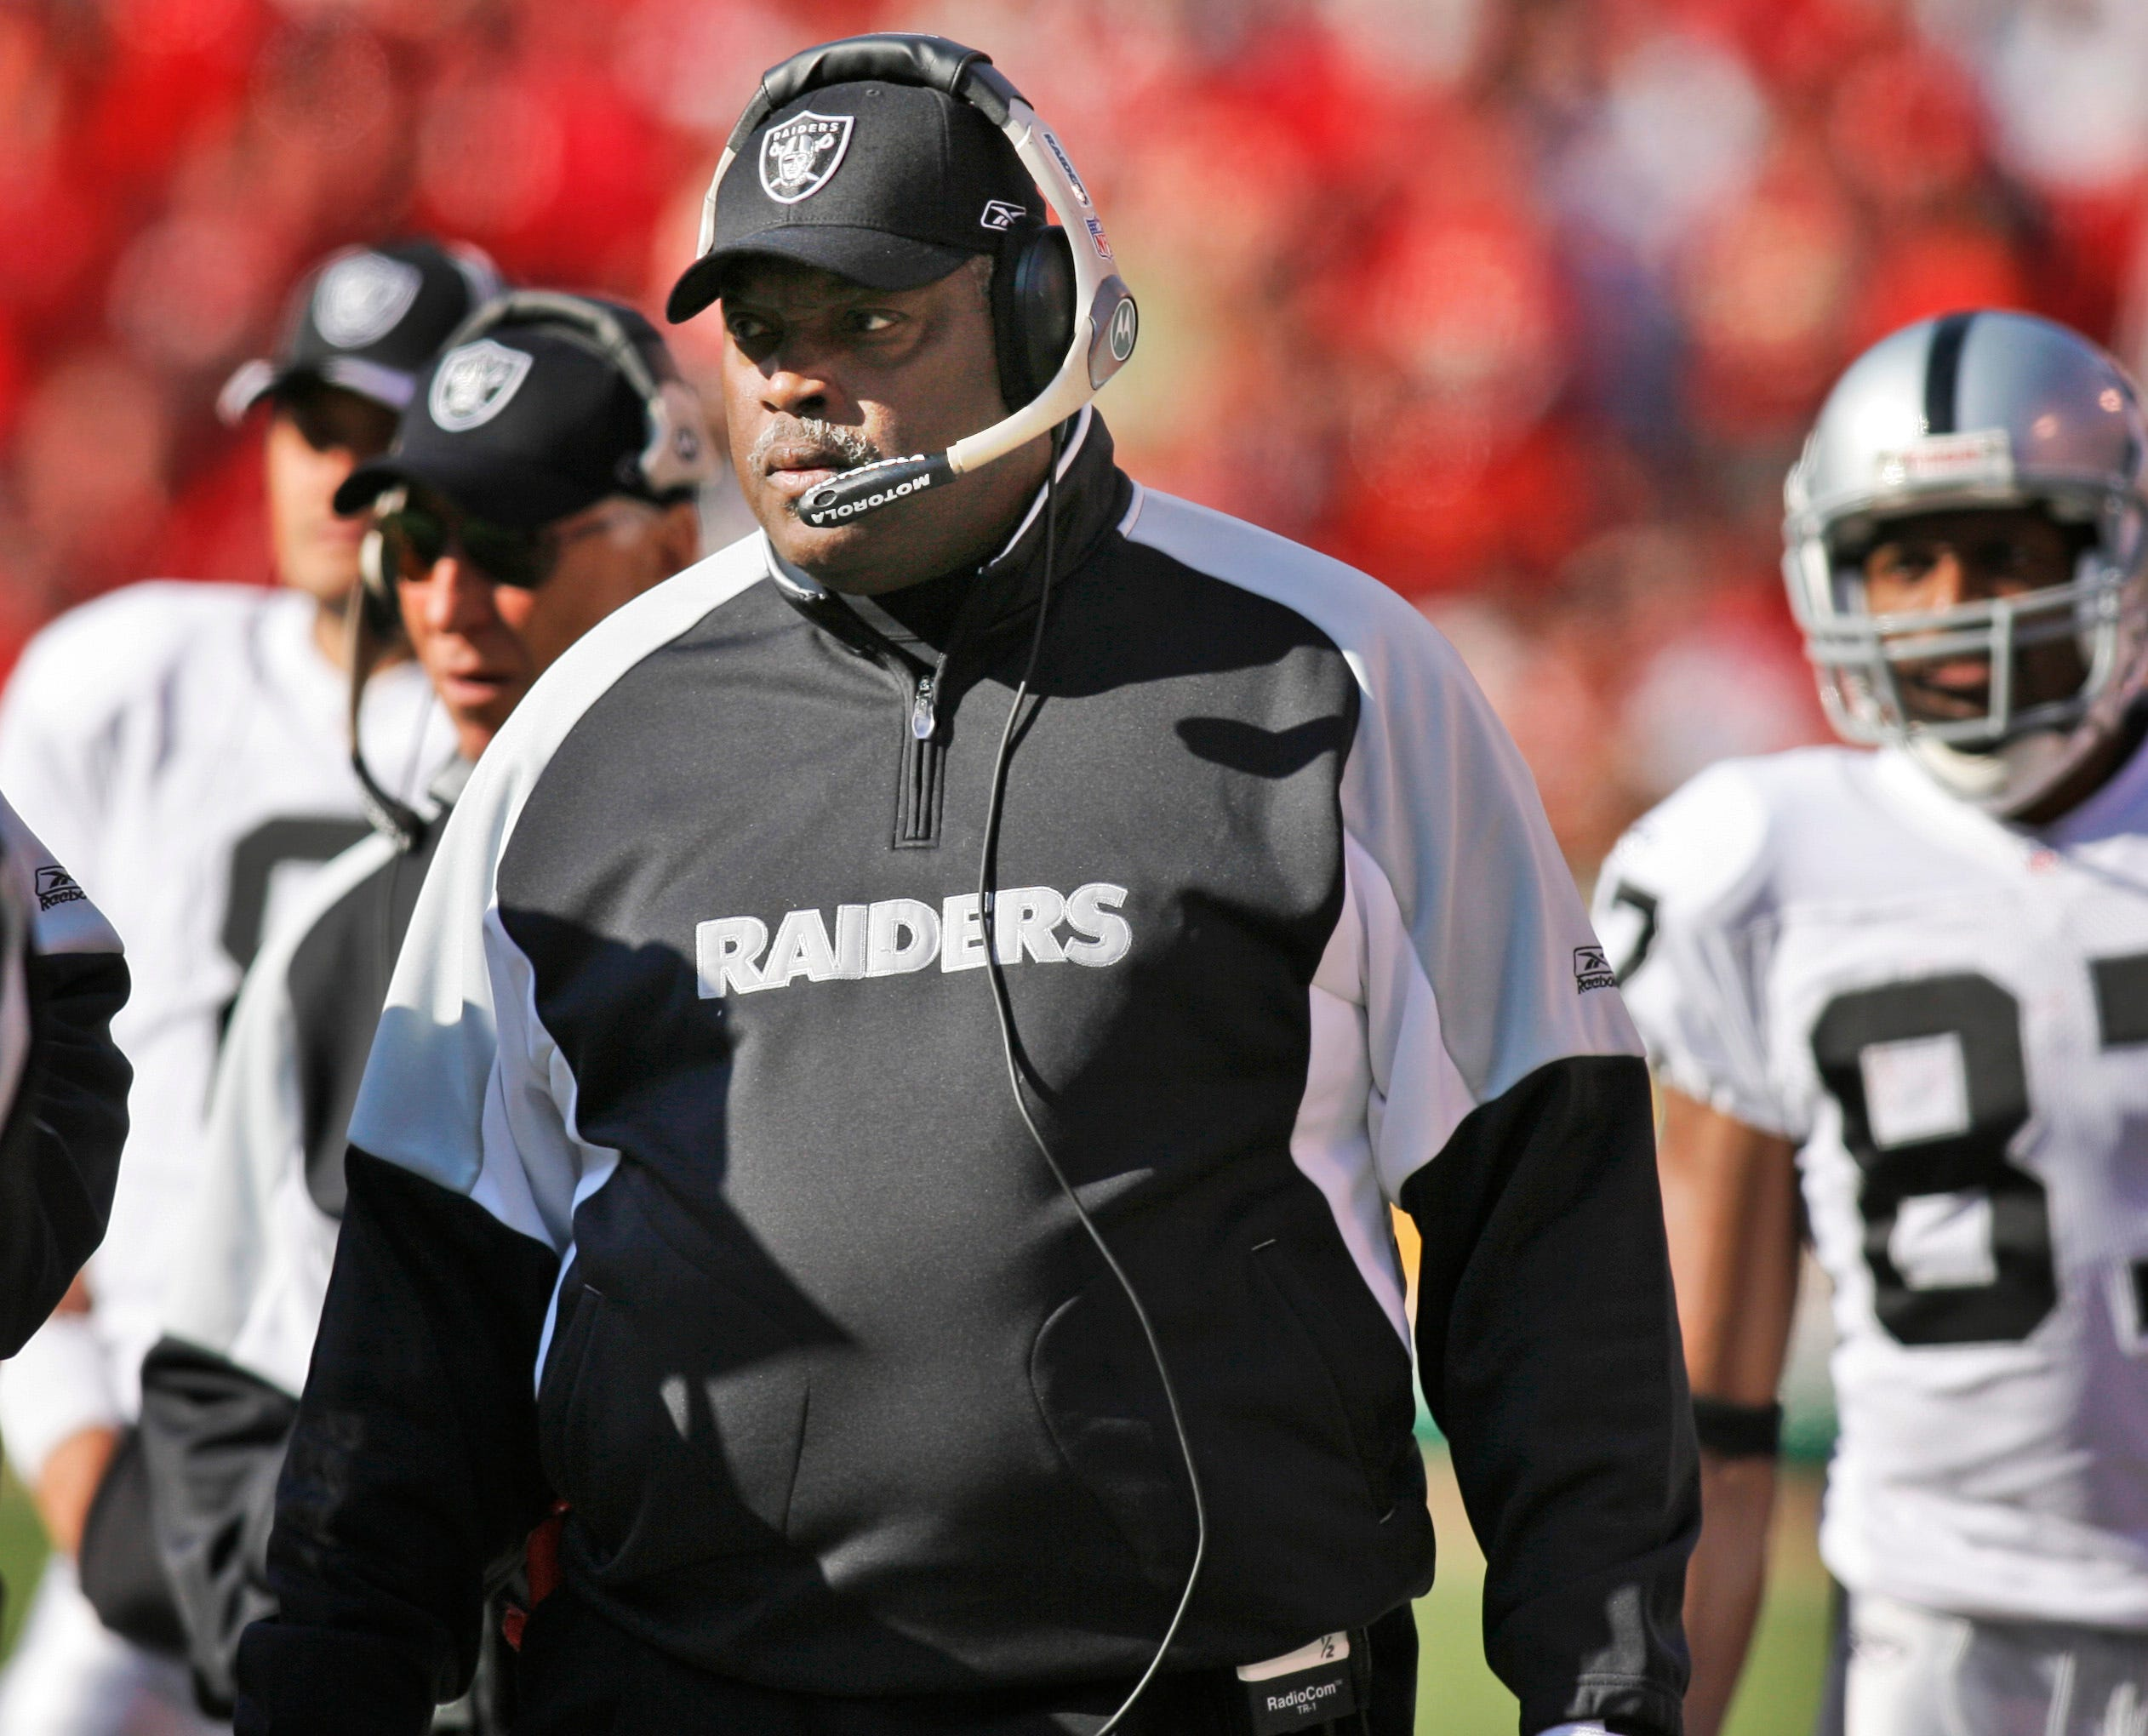 Ex-Raiders player, coach Art Shell reacts to Jon Gruden emails:  He hurt a lotof people